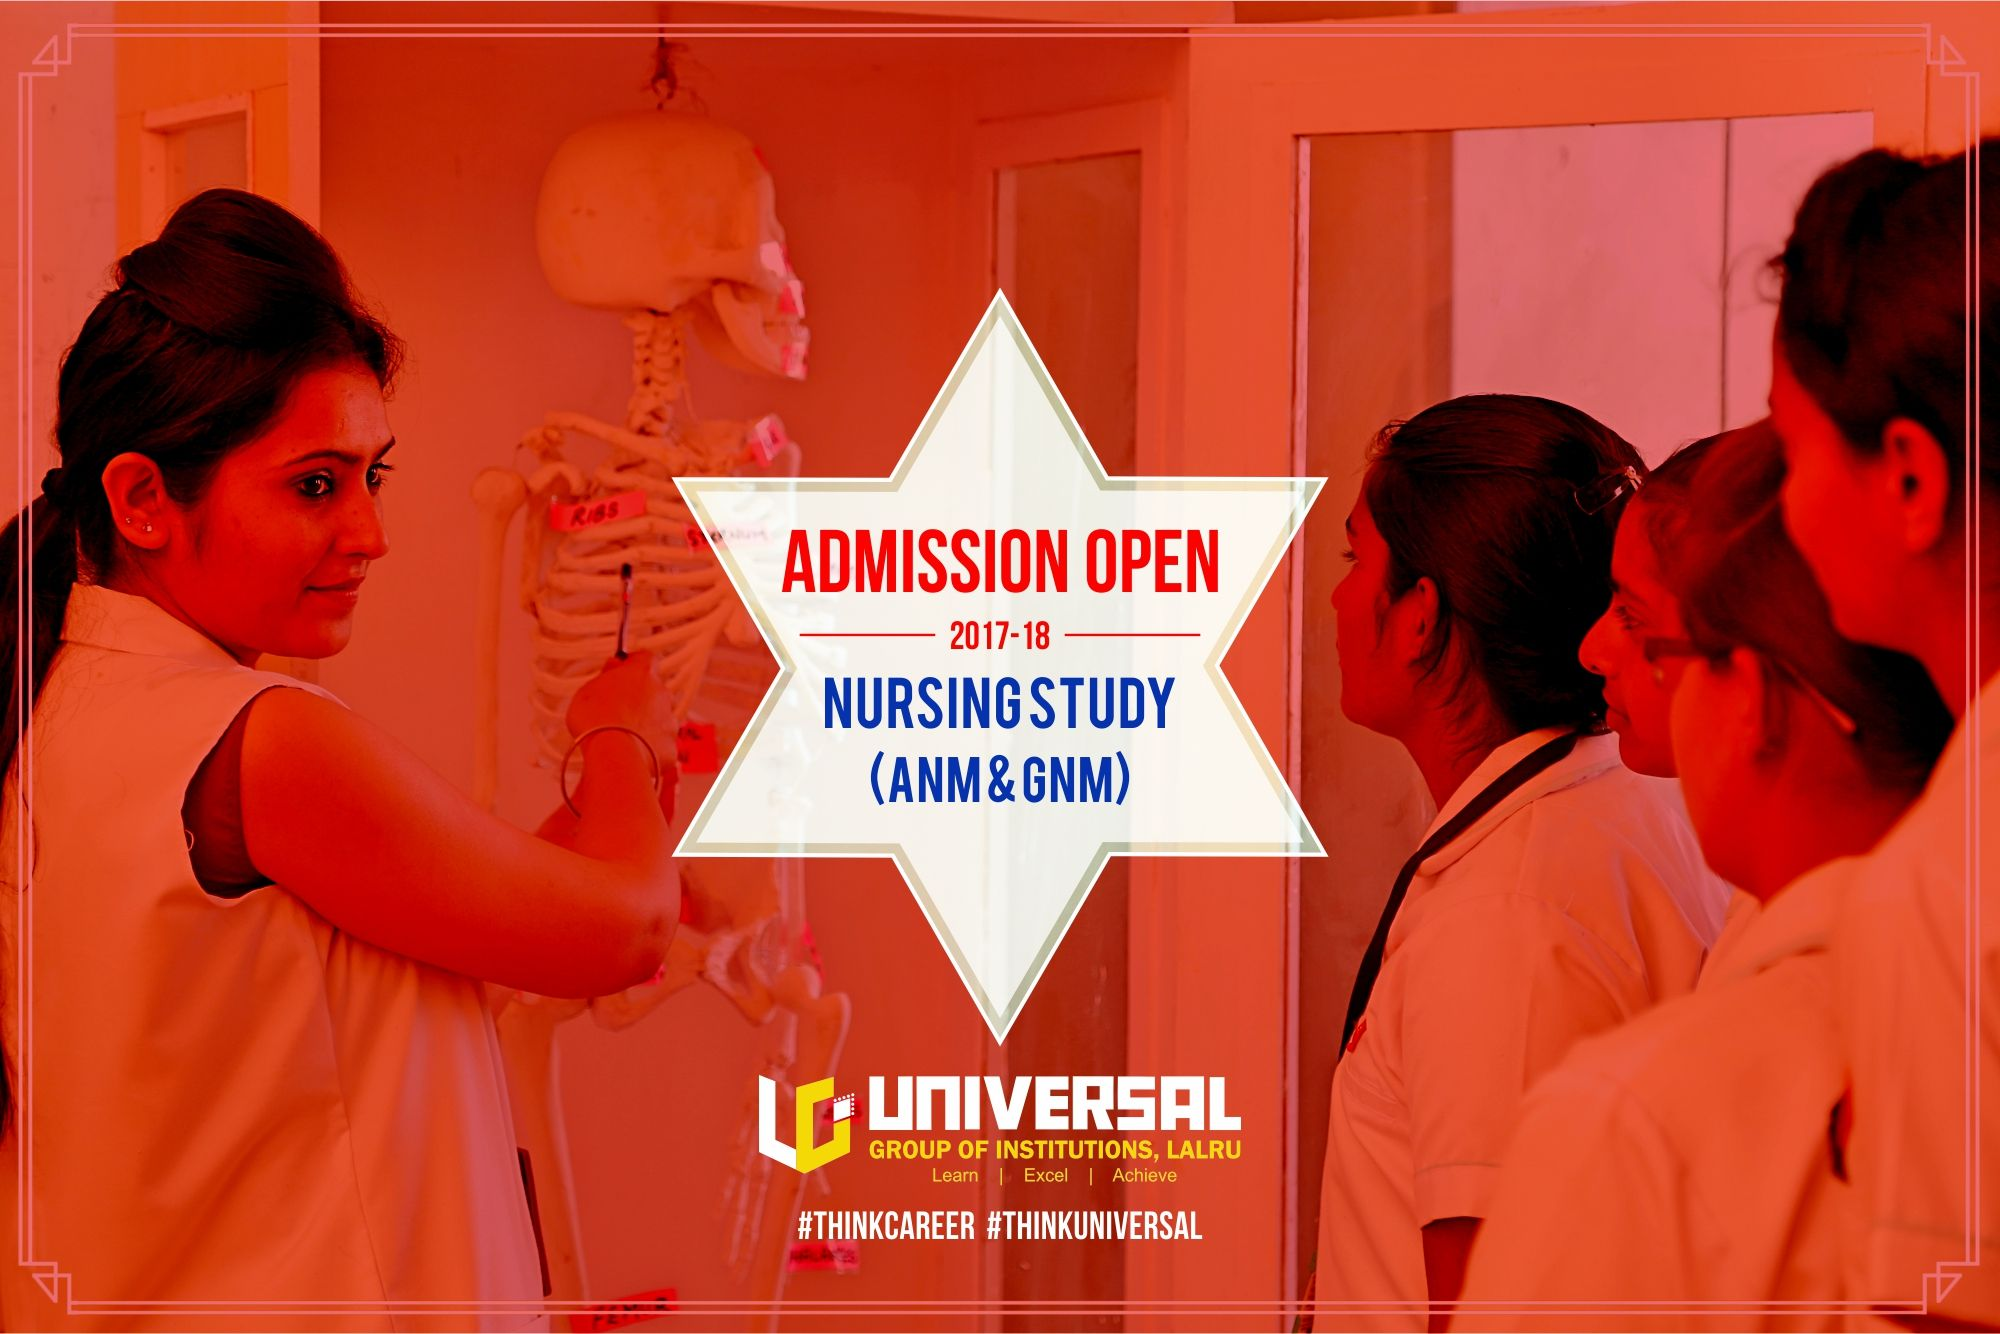 Pin on Admissions 201718